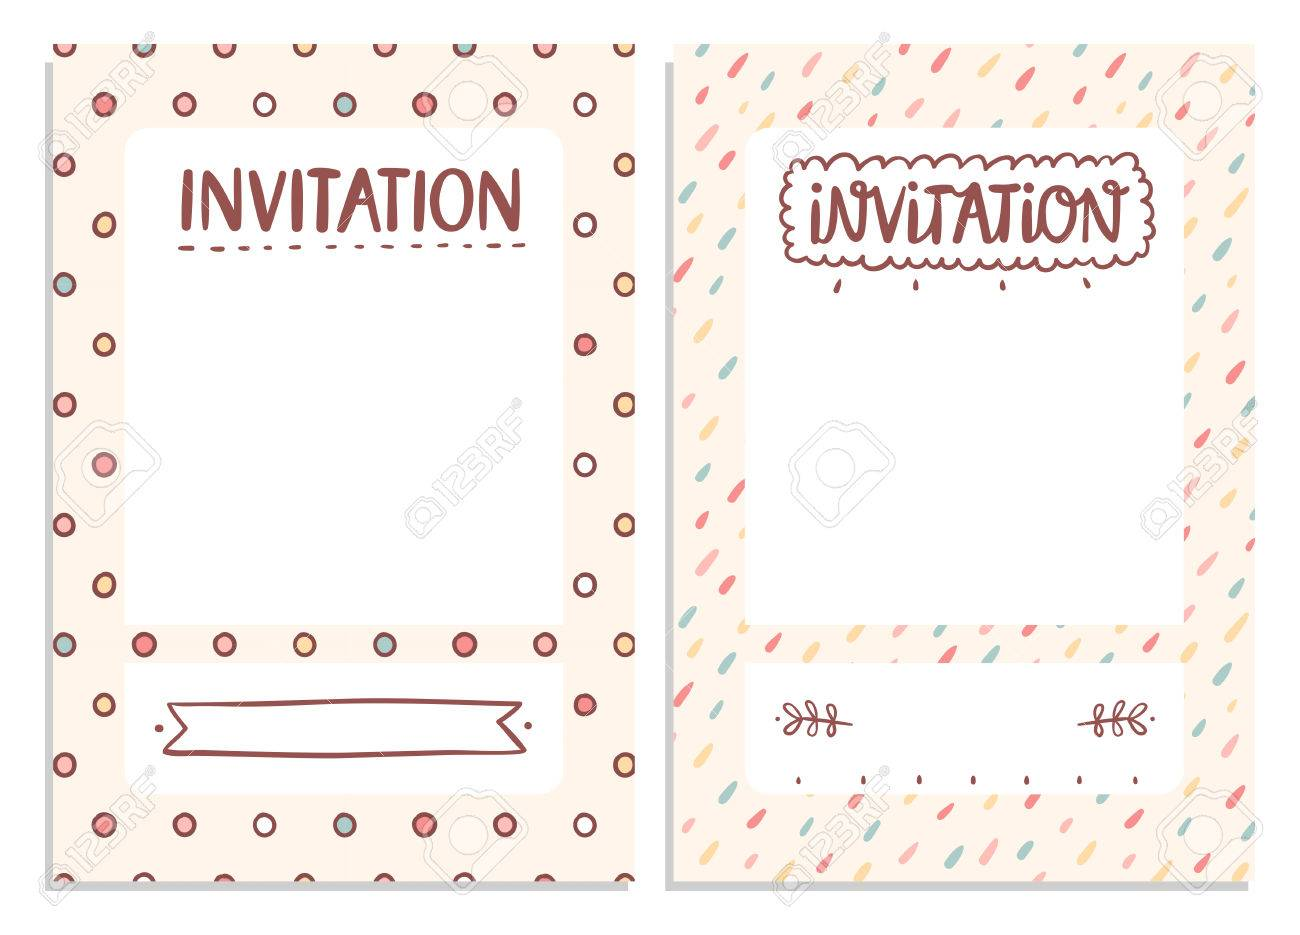 Cute Invitation Templates For Festive Events Royalty Free Cliparts